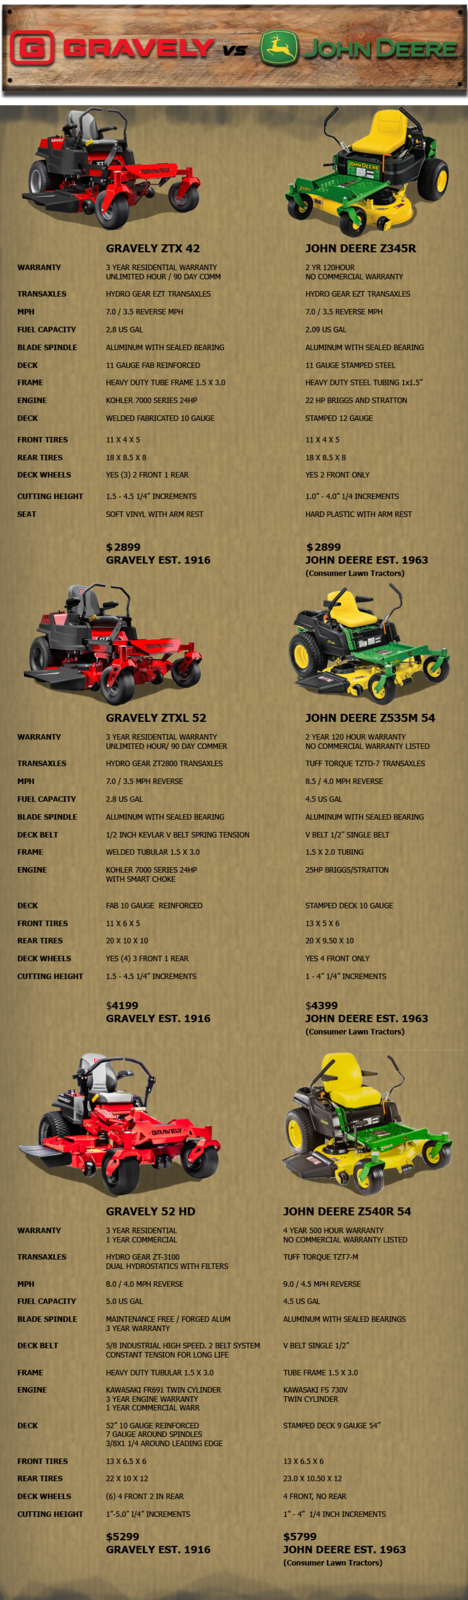 Gravely Vs John Deere Outdoor World Azle Tx 817 237 5592